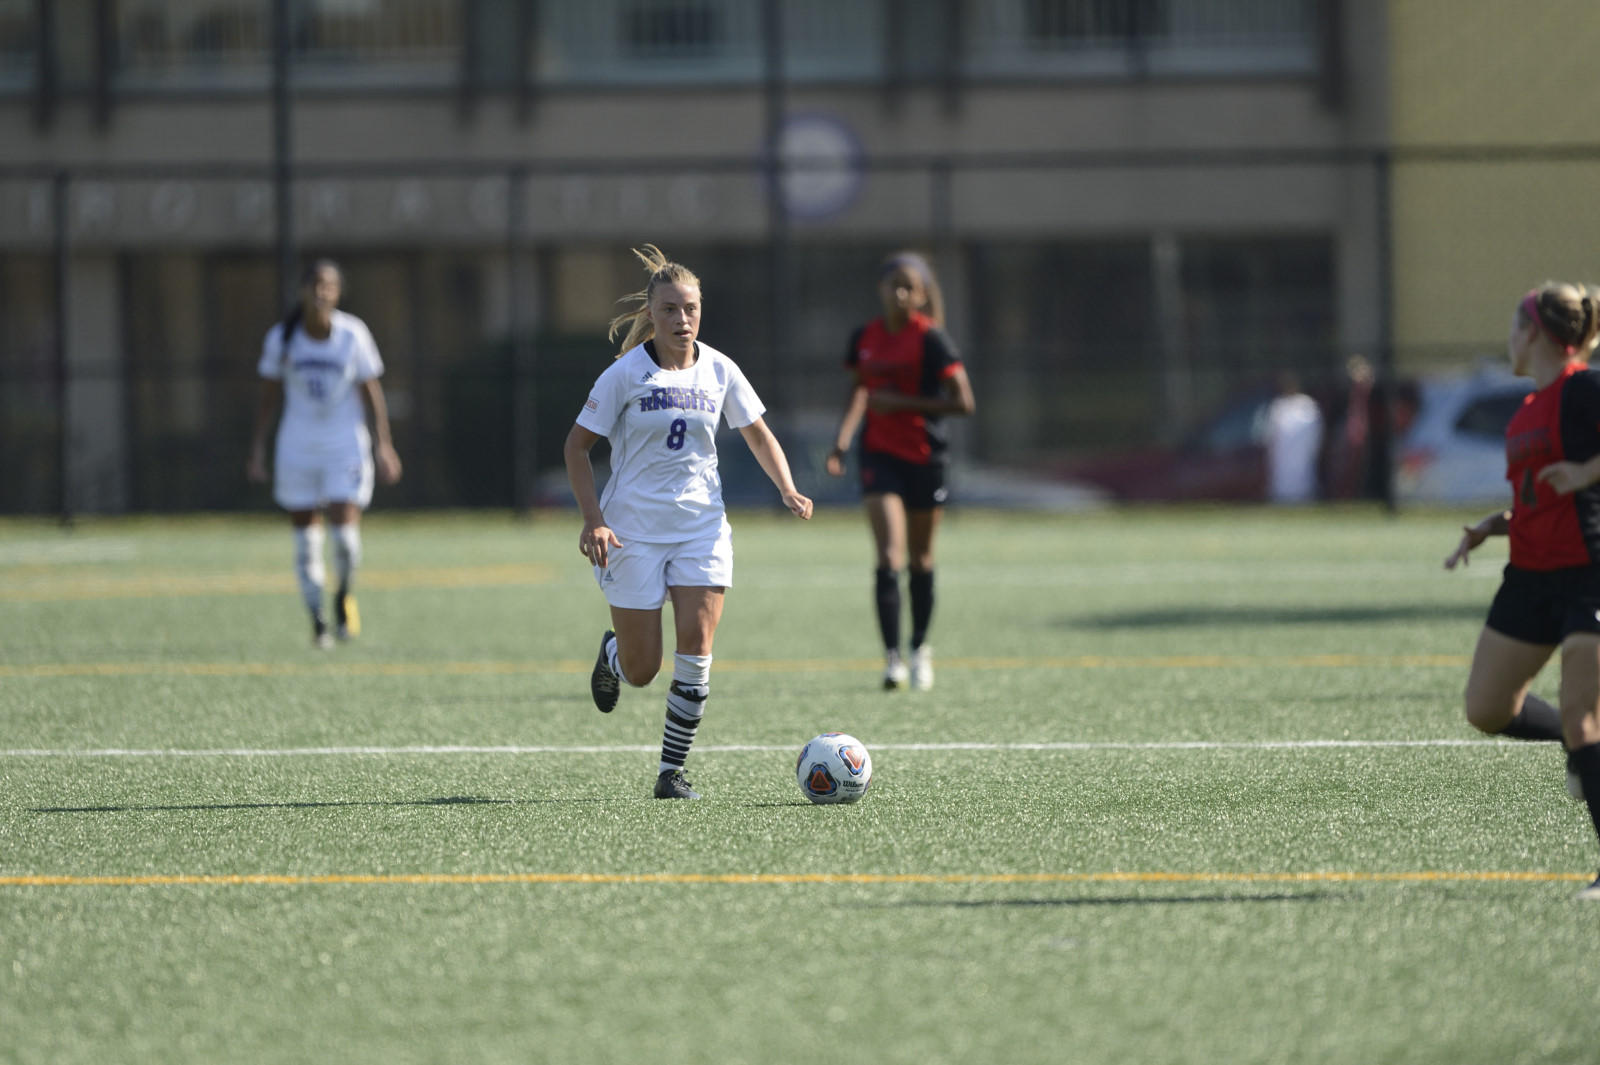 Offense Clicks on All Cylinders As UB Women's Soccer Tops Jefferson, 3-0